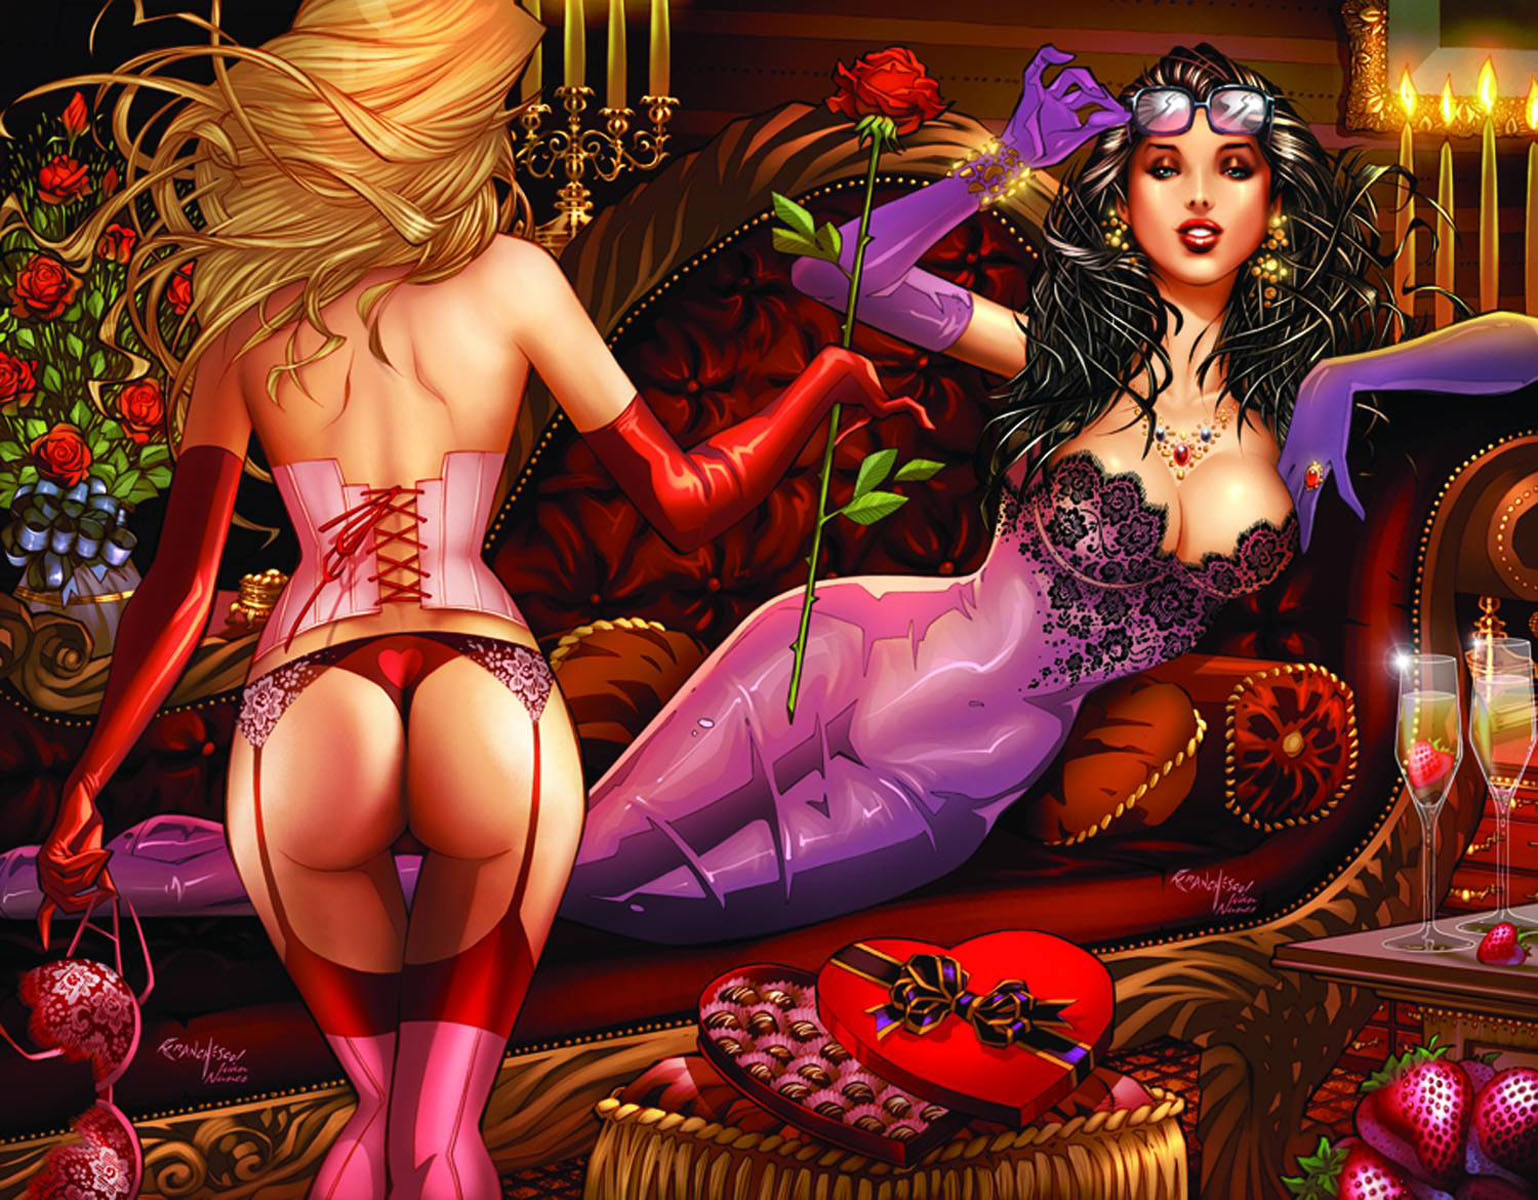 grimmvalentinesb ZENESCOPE ENTERTAINMENT Solicitations for FEBRUARY 2013